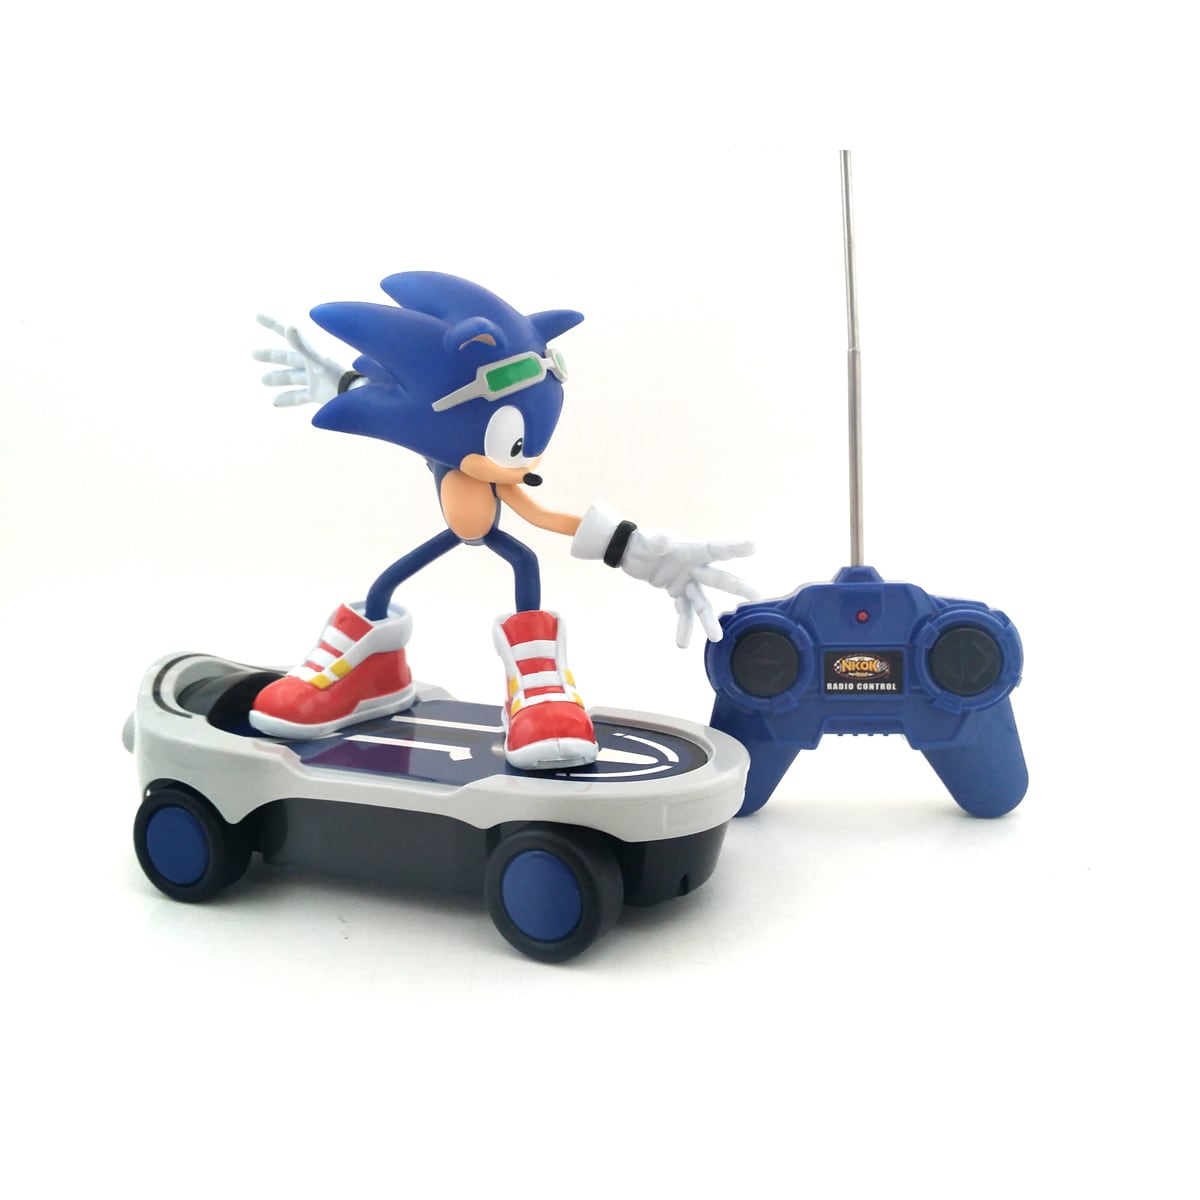 Shop Remote Control Sonic Free Riders Sonic The Hedgehog Rc Skateboard Overstock 10613347